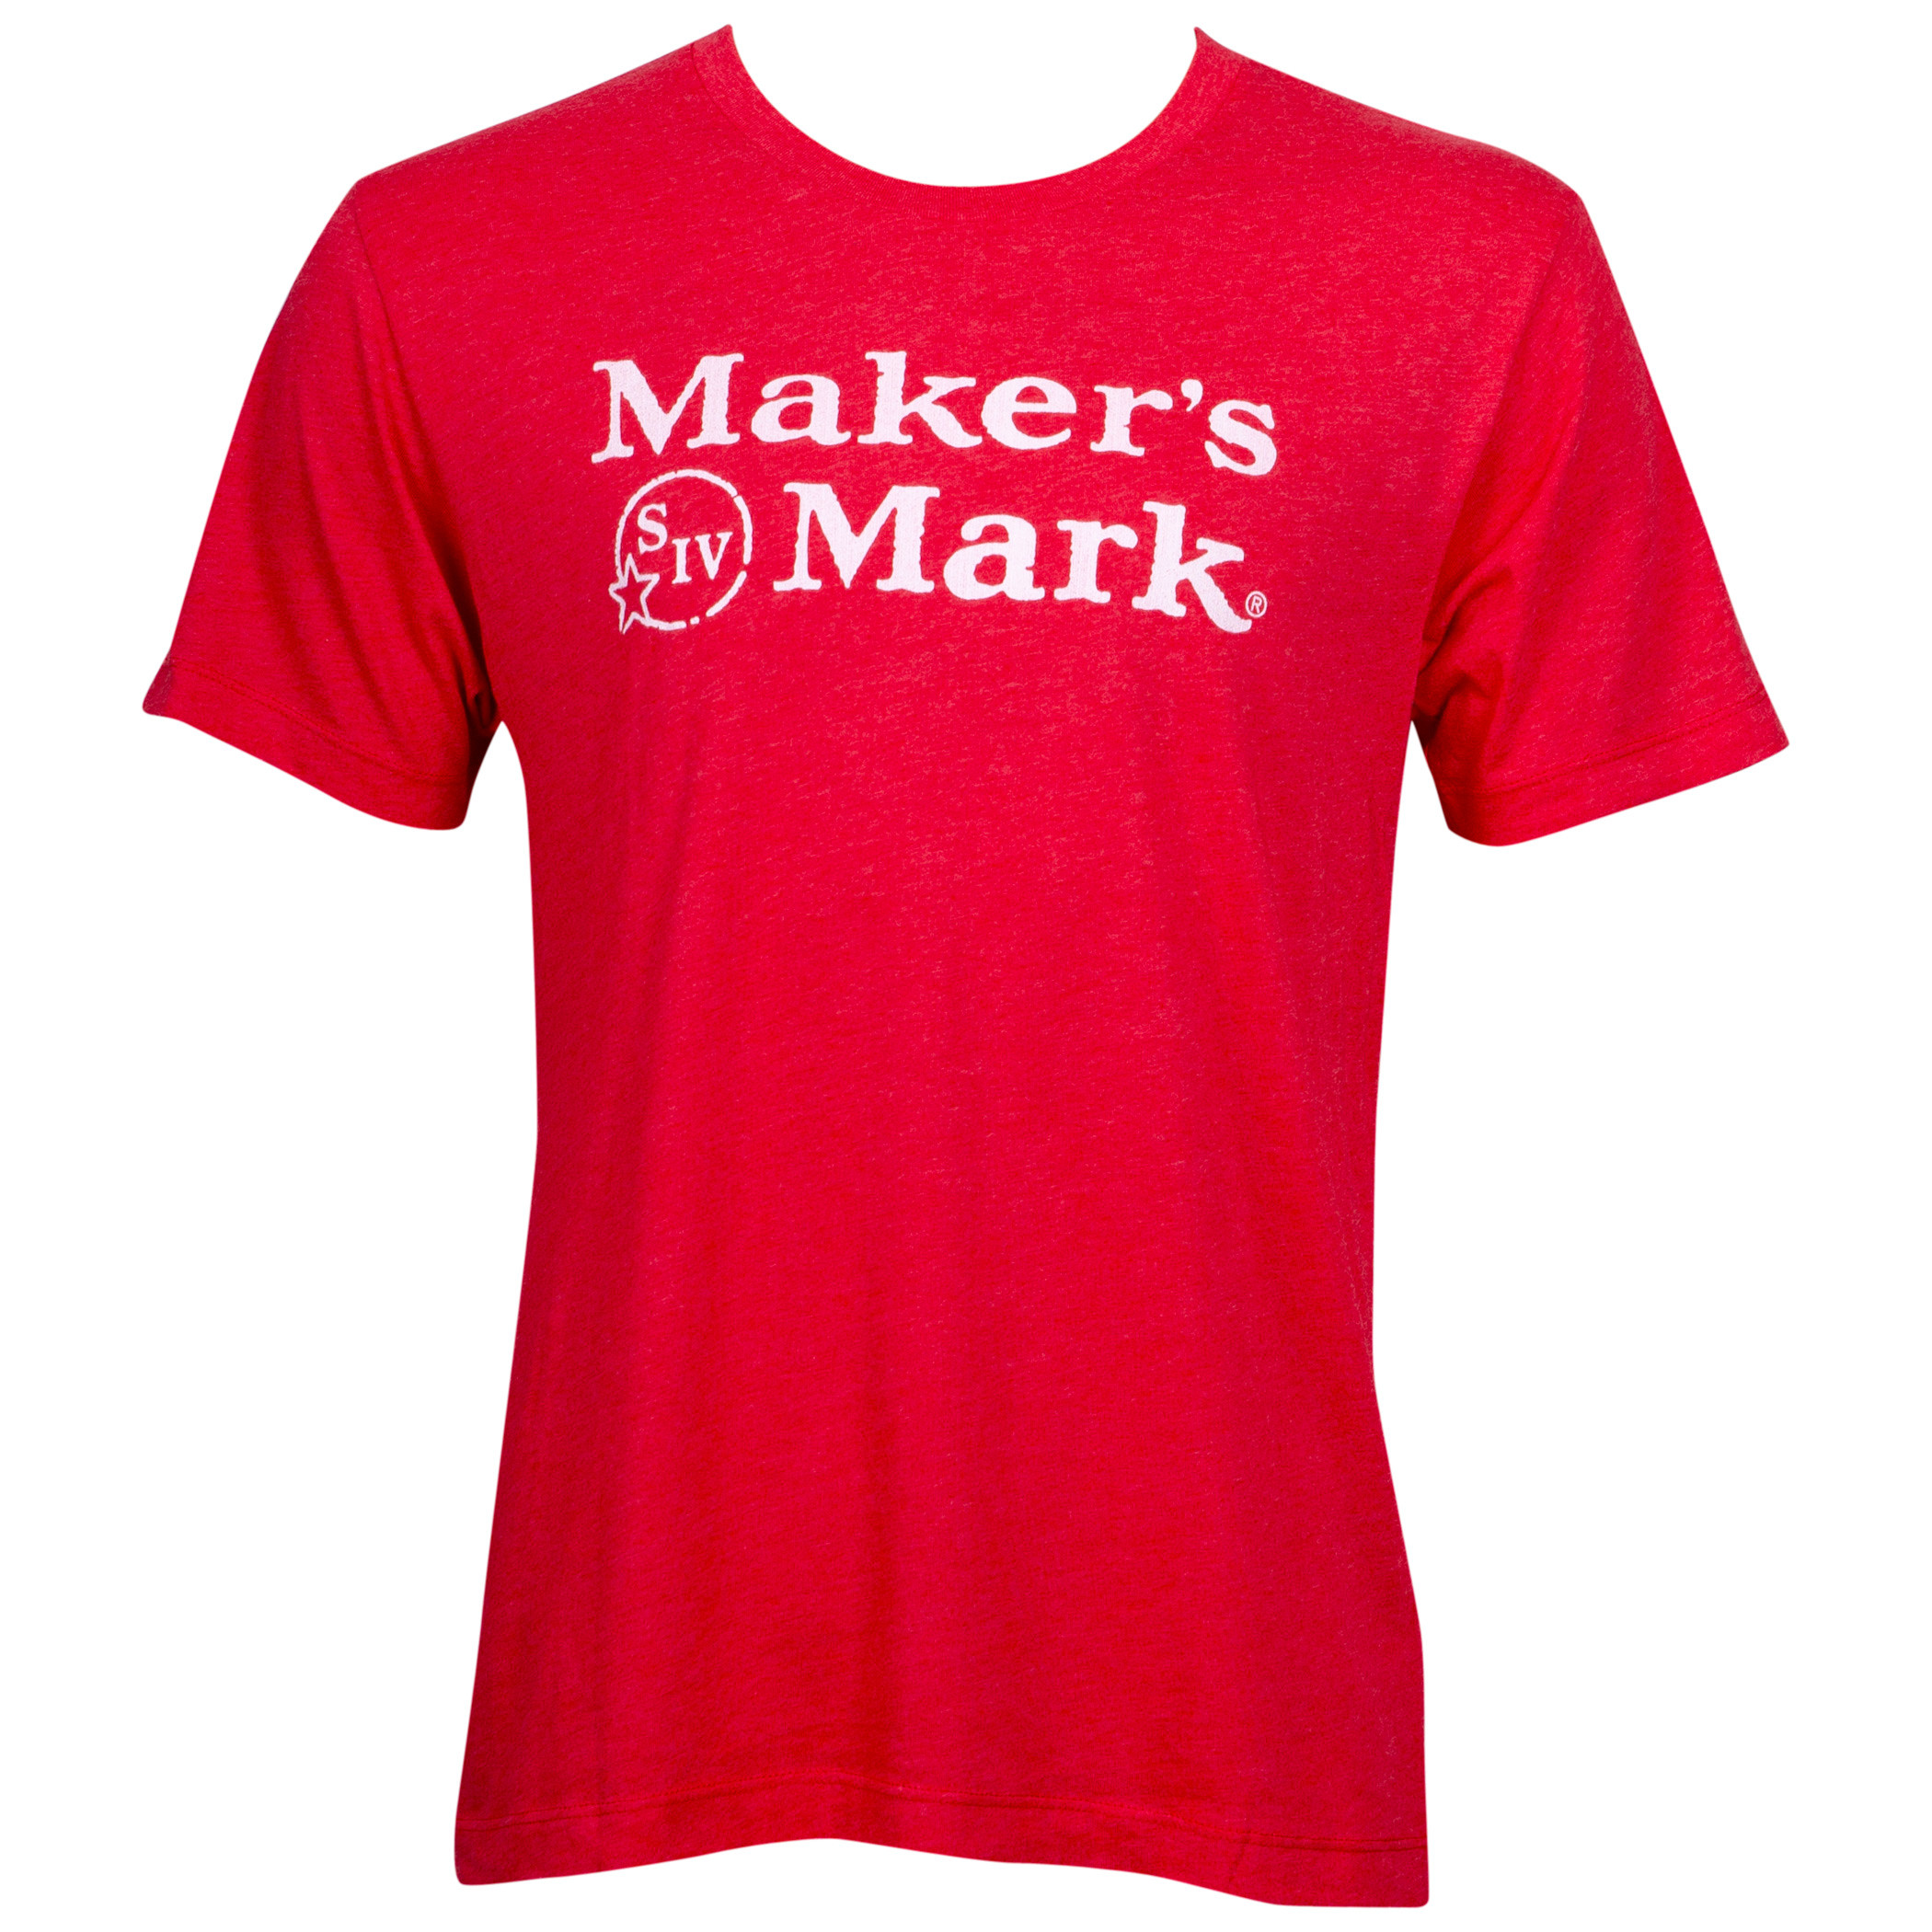 Maker's Mark Men's Red Eco Friendly T-Shirt